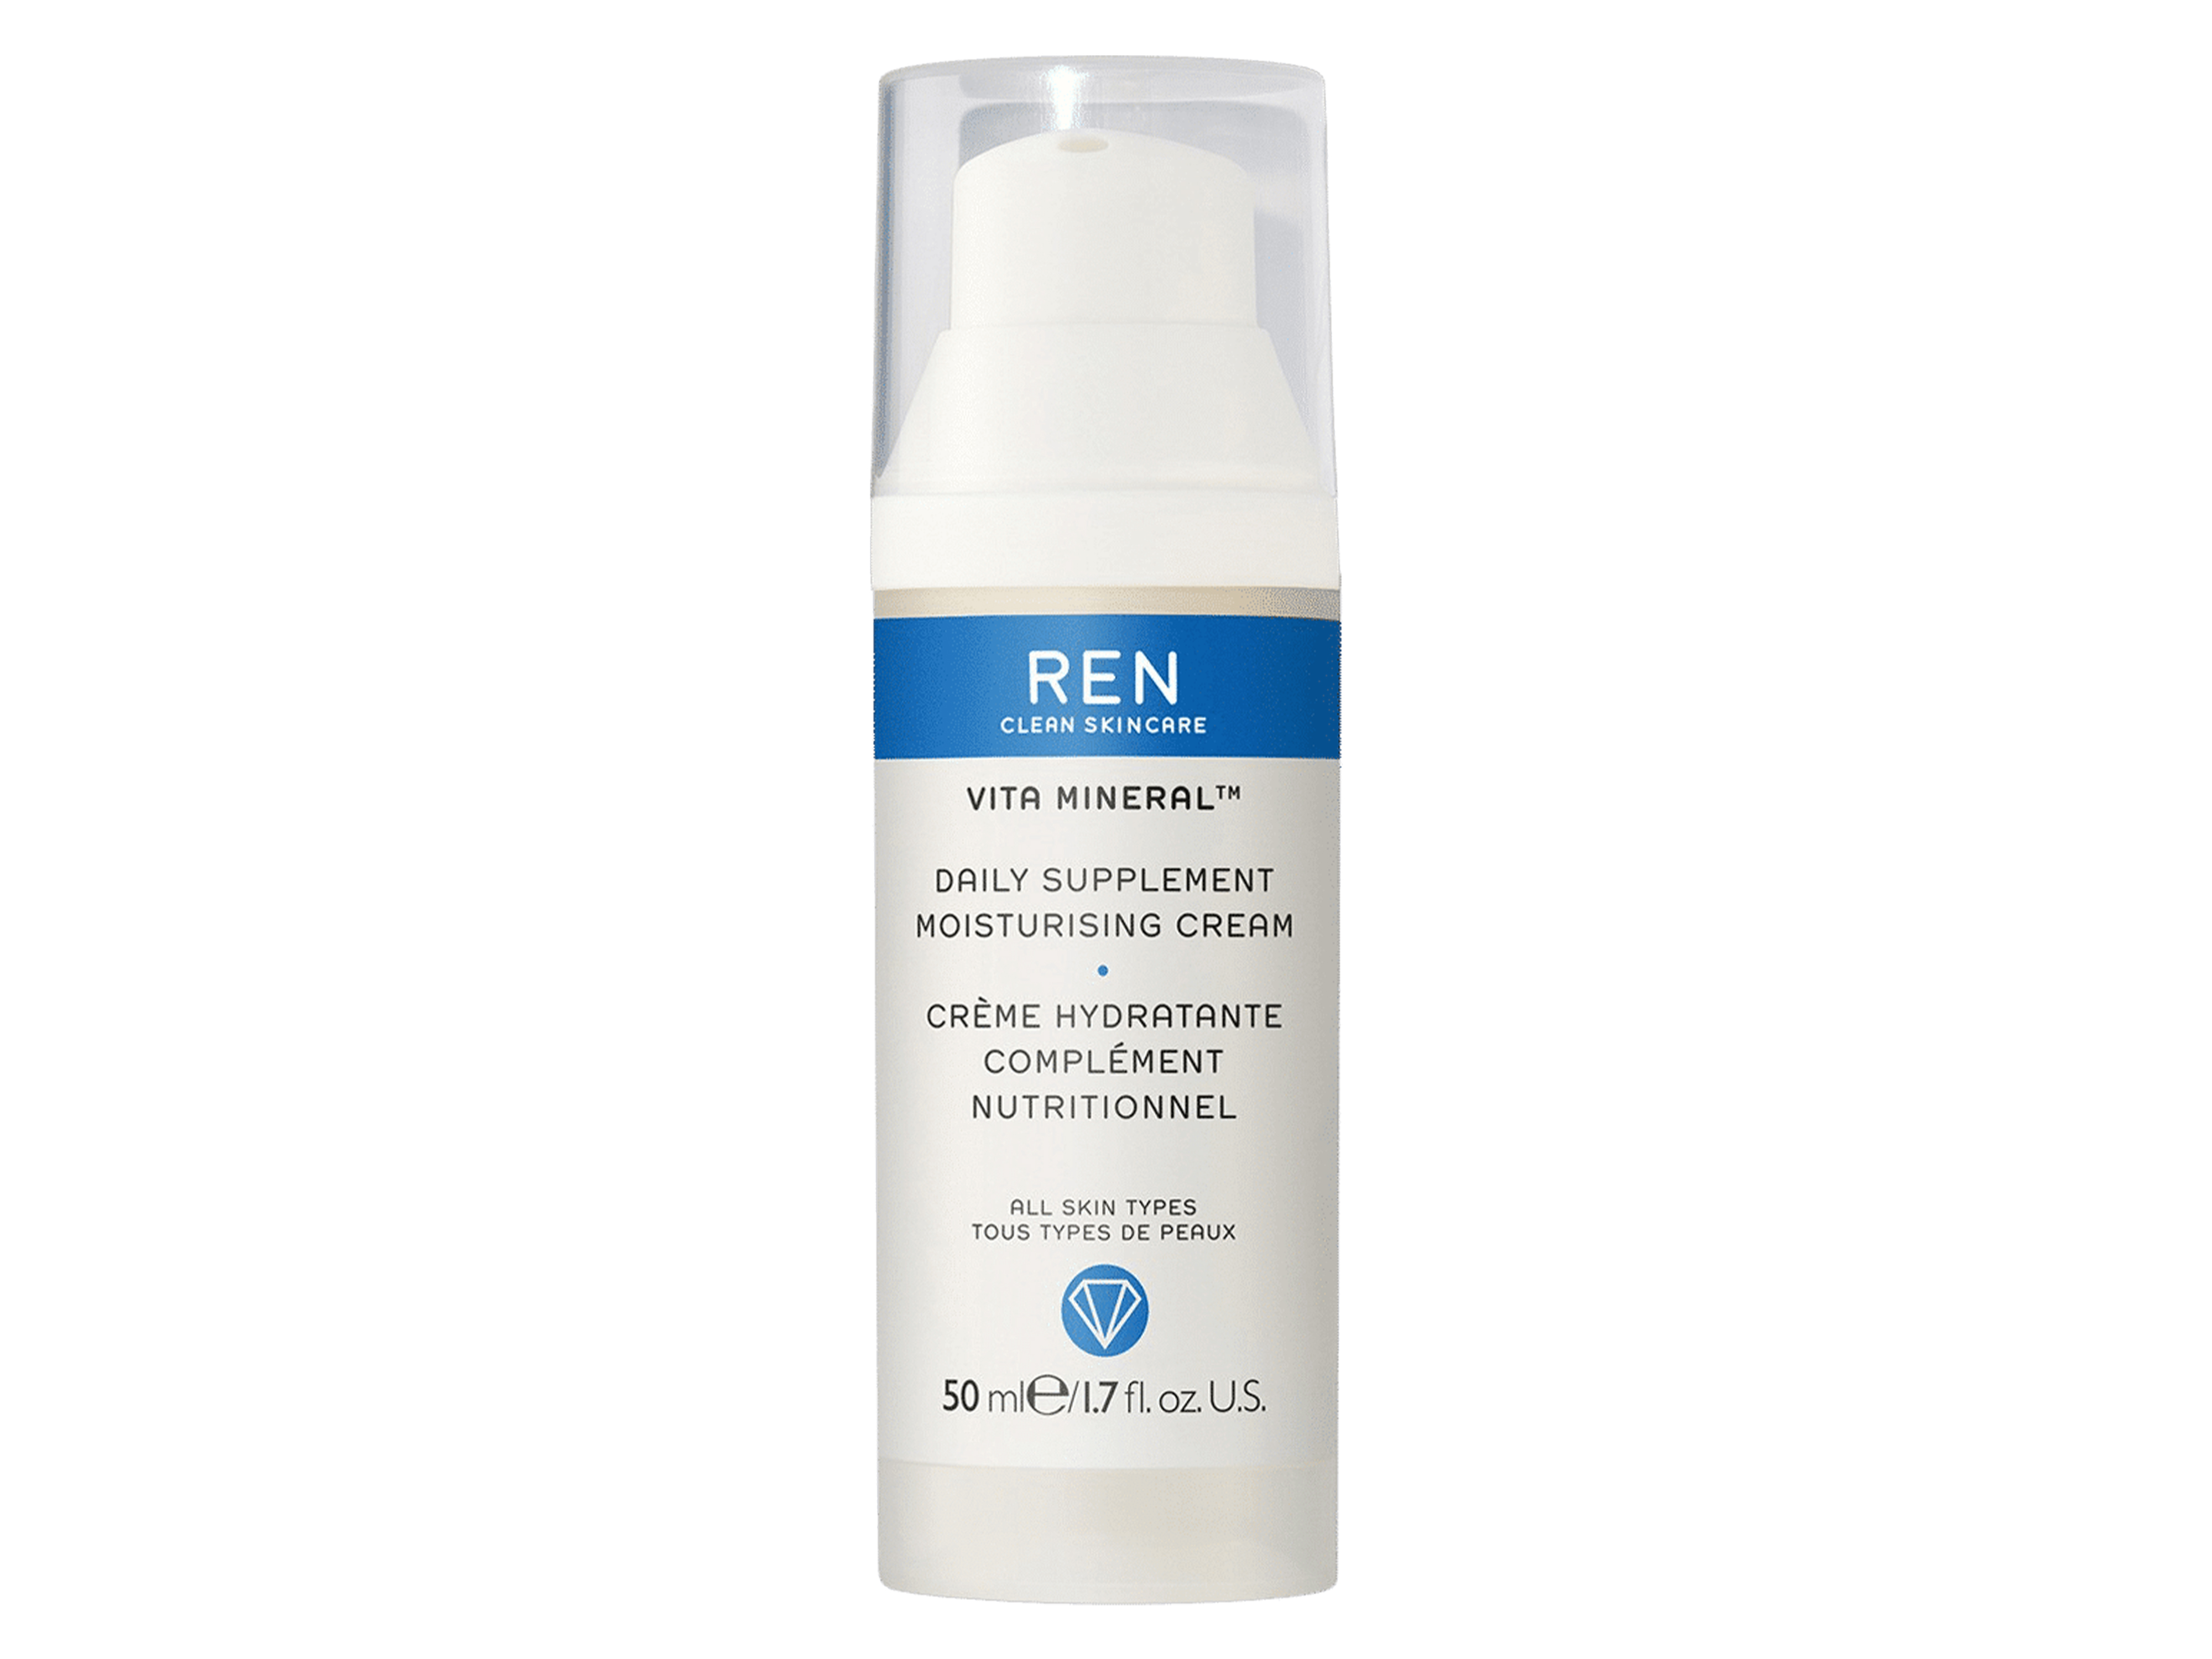 REN Vita Mineral Moisturising Day Cream, 50 ml